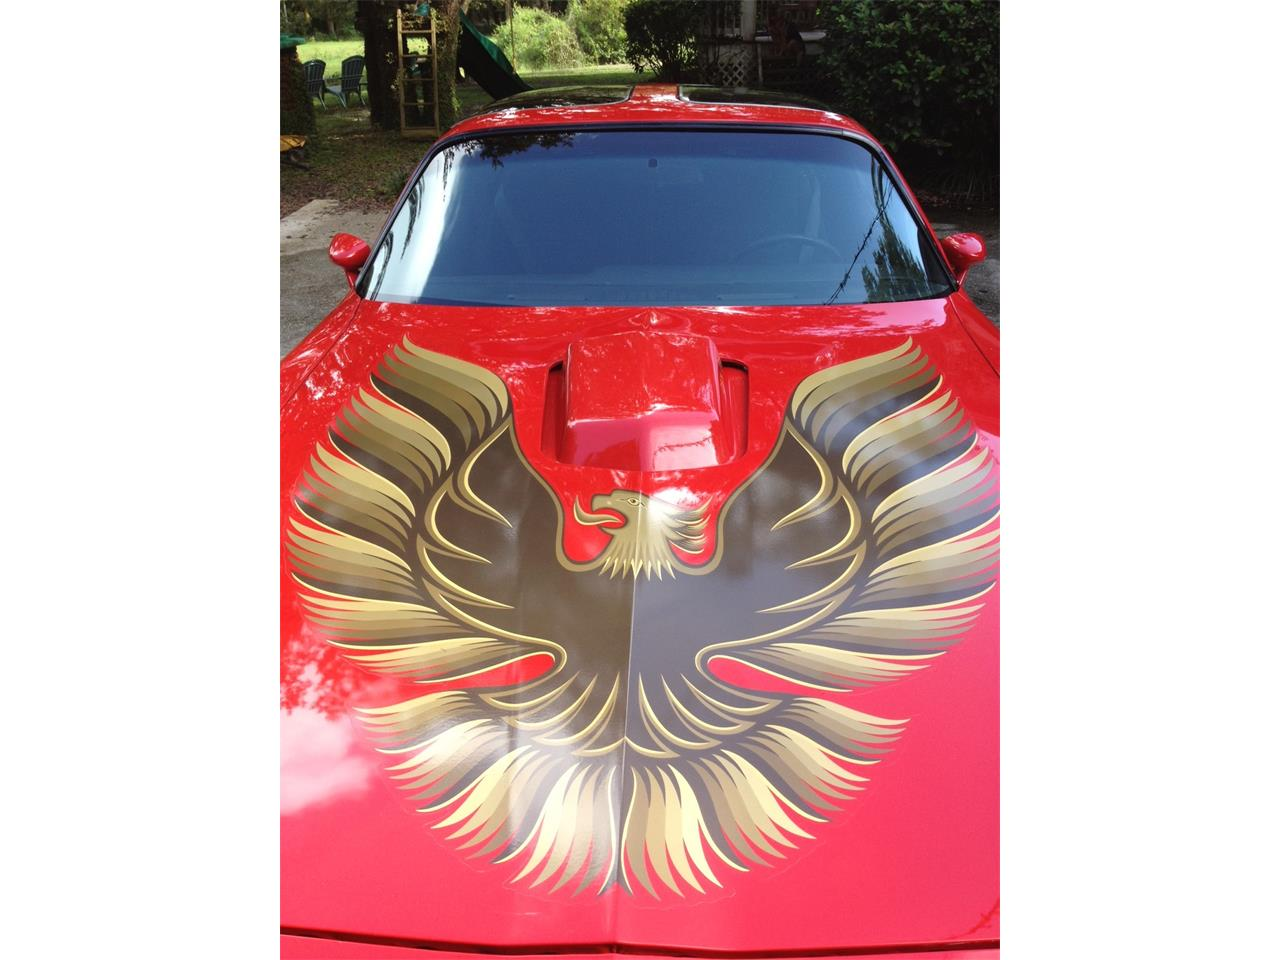 Large Picture of 1979 Pontiac Firebird Trans Am located in Sarasota Florida - $29,900.00 - F2WL